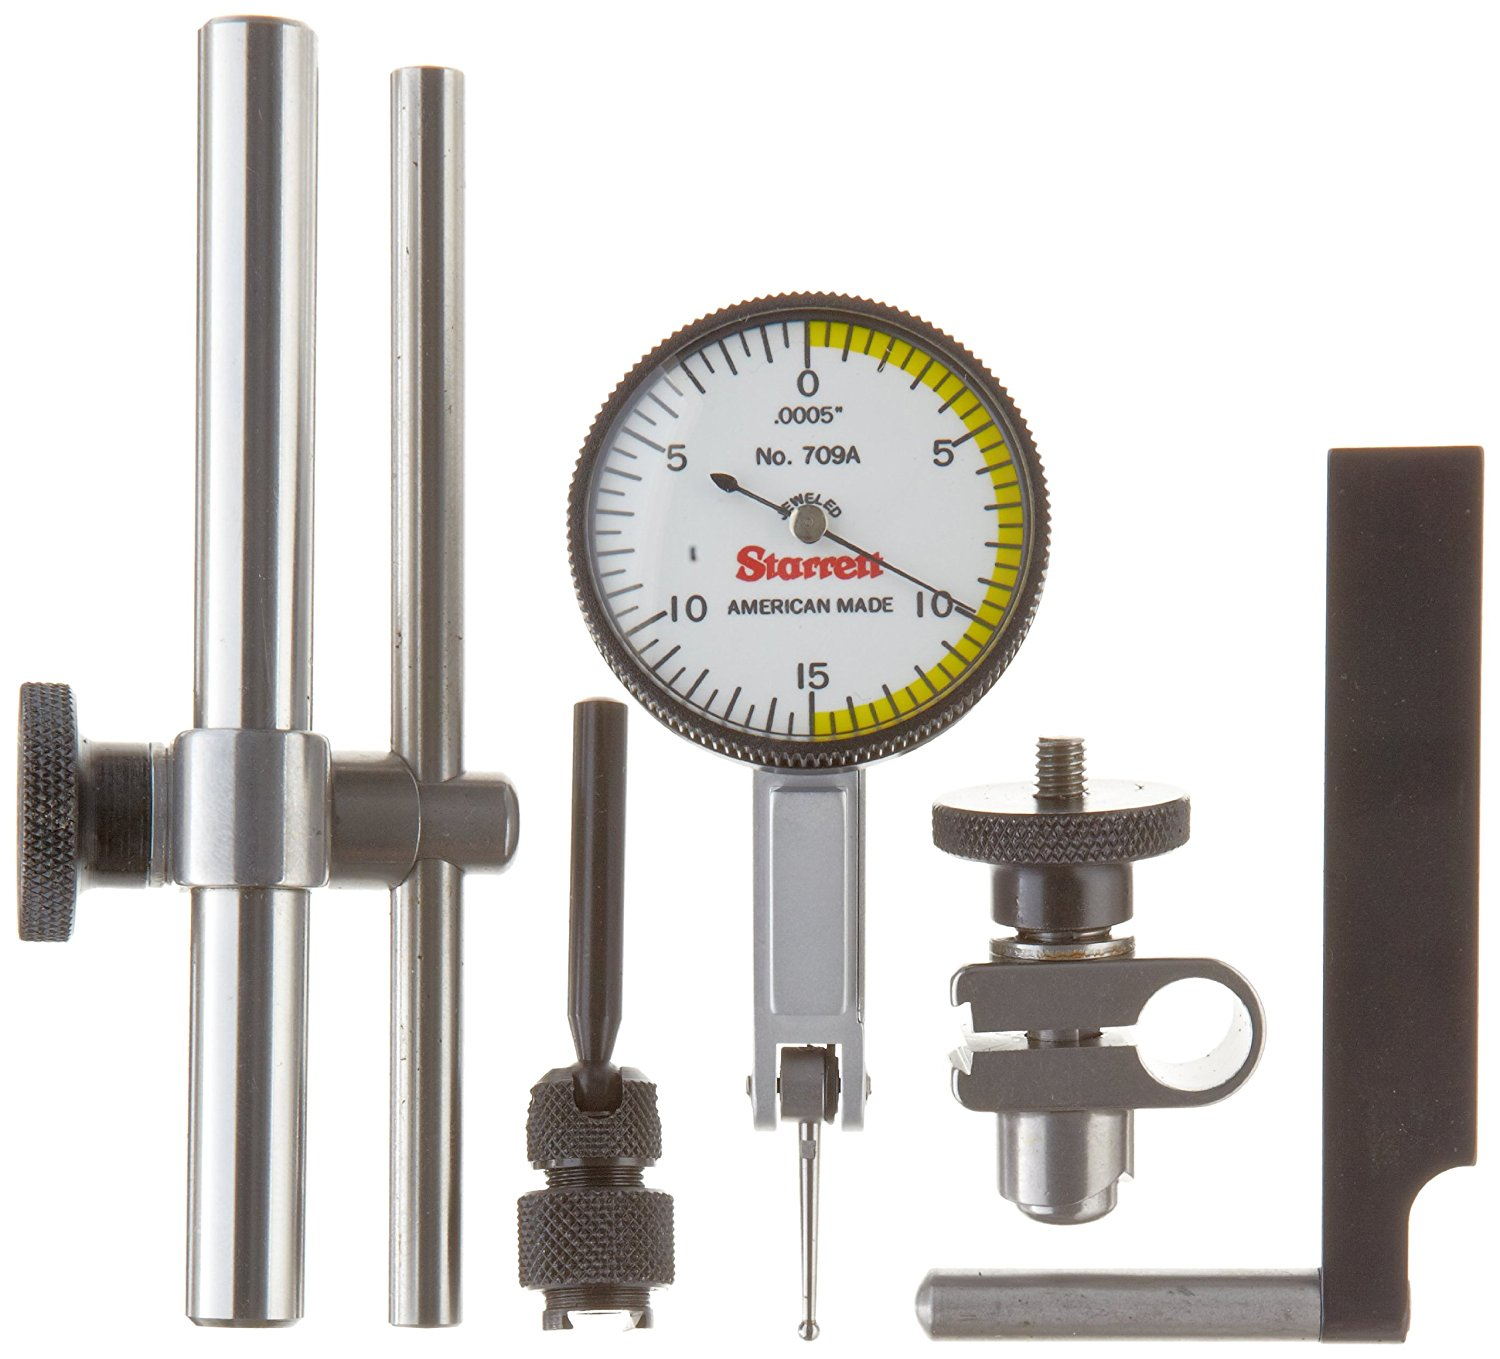 """Starrett 709ACZ Dial Test Indicator with Attachments, Dovetail Mount, White Dial, 0-15-0 Reading, 1.375"""" Dial Dia., 0-0.03"""" Range, 0.0005"""" Graduation, +/-0.0005"""" Accuracy"""